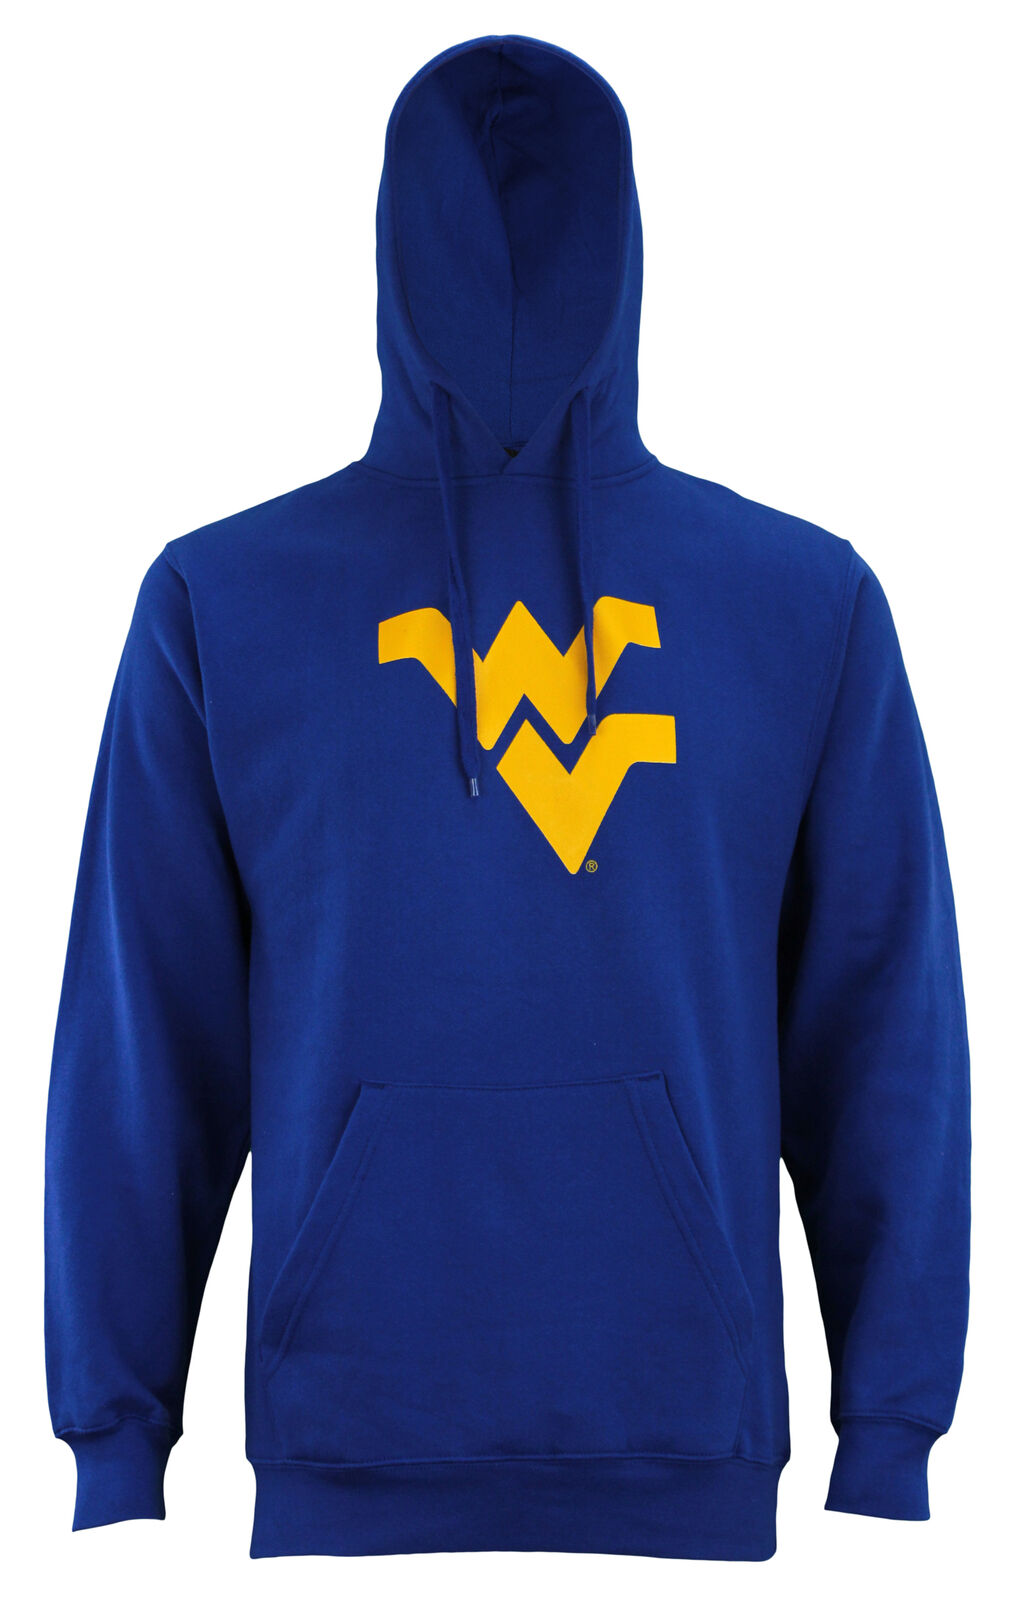 6861b01ccc Gen NCAA Men s West Mountaineers FZ Team Logo Hoodie 2 Virigina ...